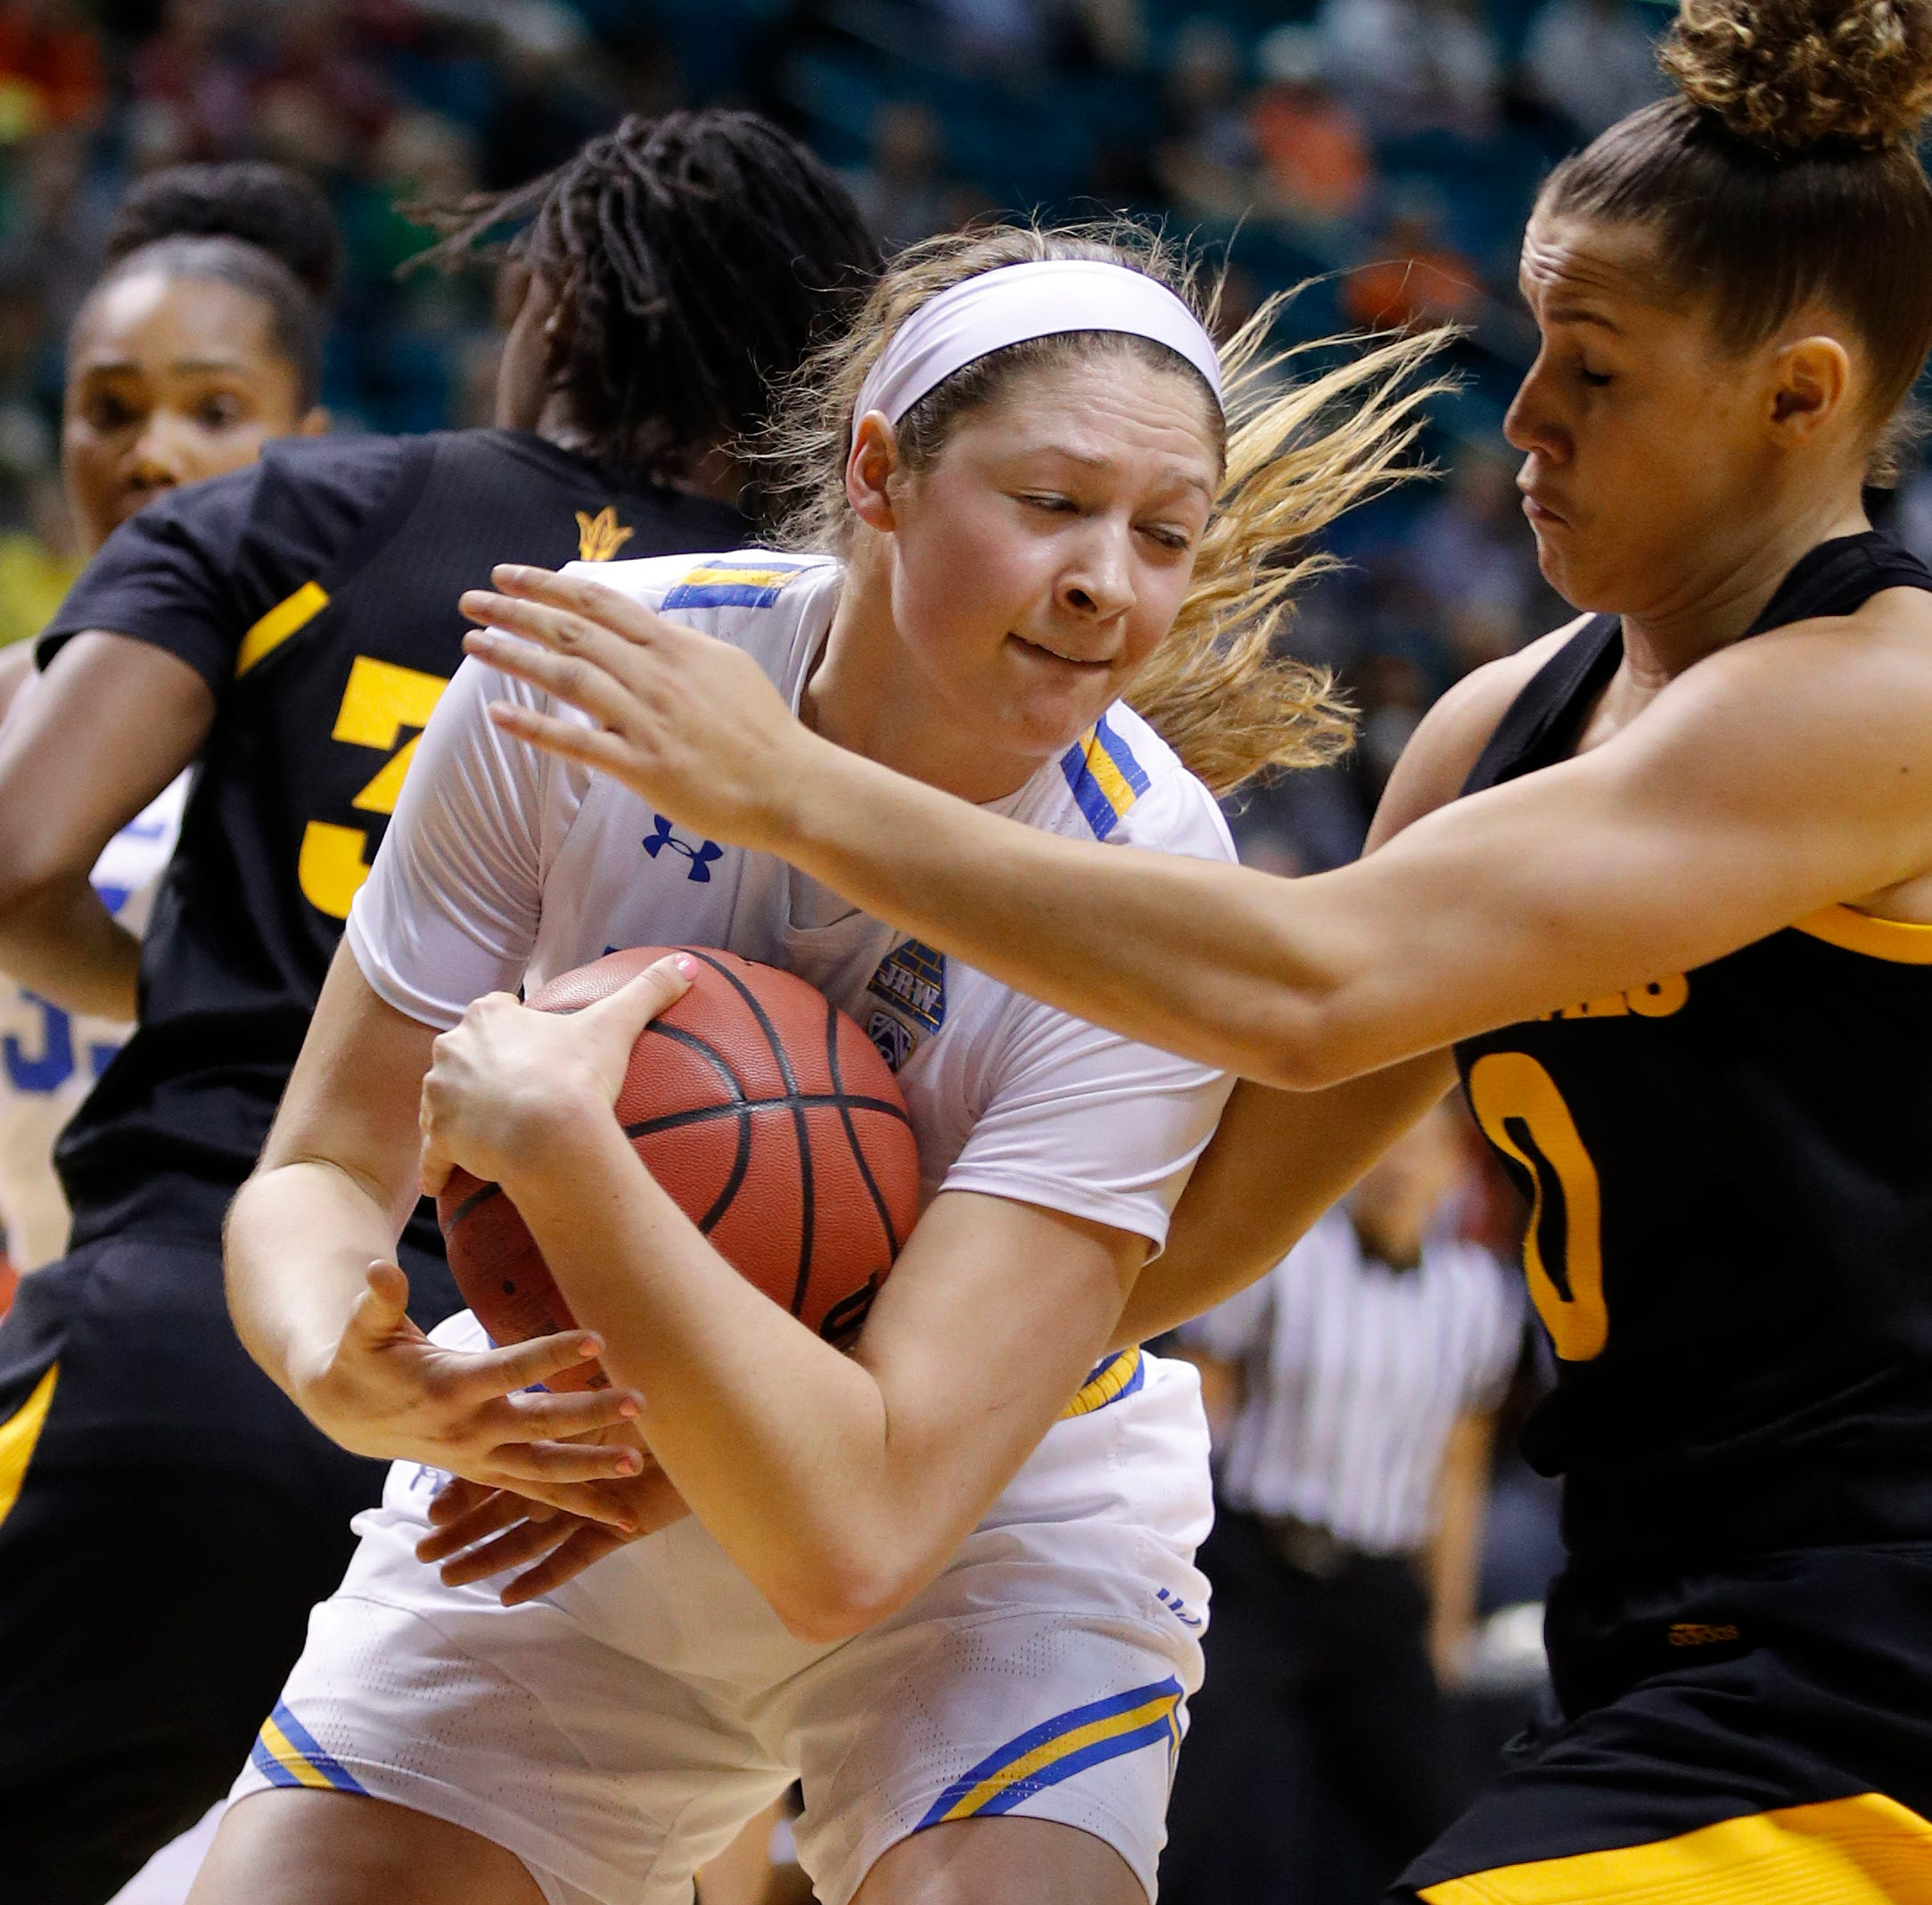 ASU women's basketball falls to UCLA Bruins in quarterfinals of the Pac-12 Tournament